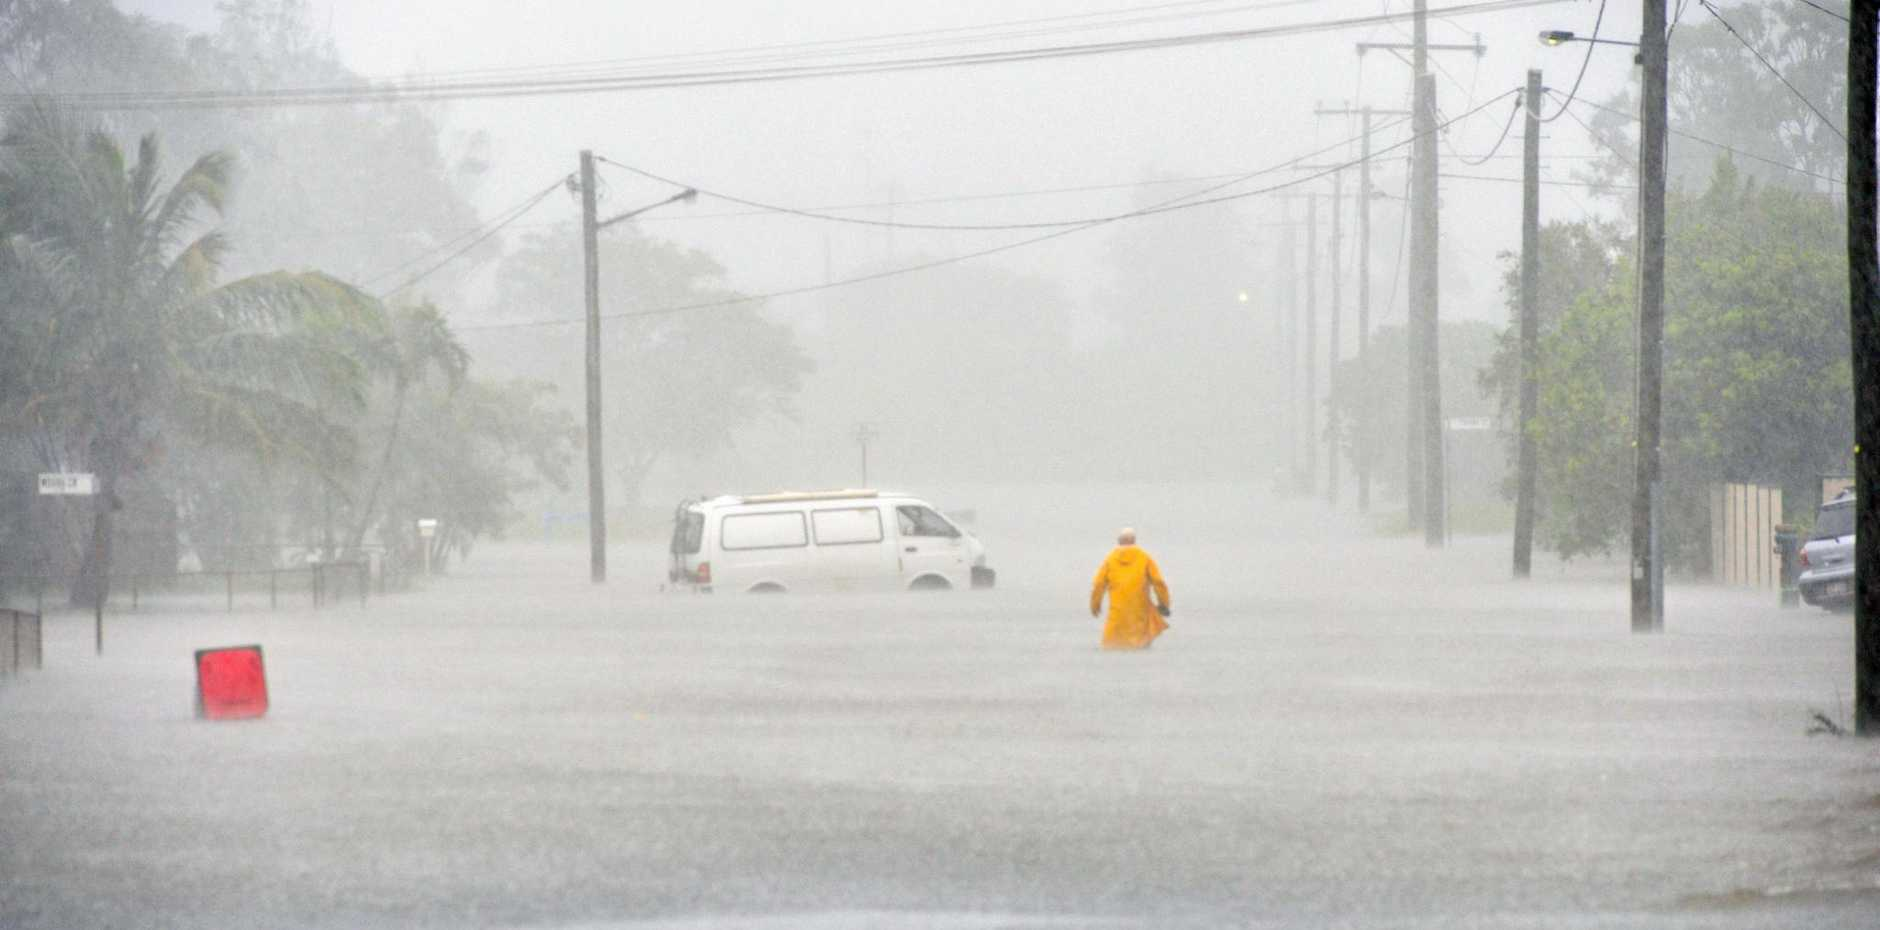 Wood Street, Barney Point was flooded yesterday.